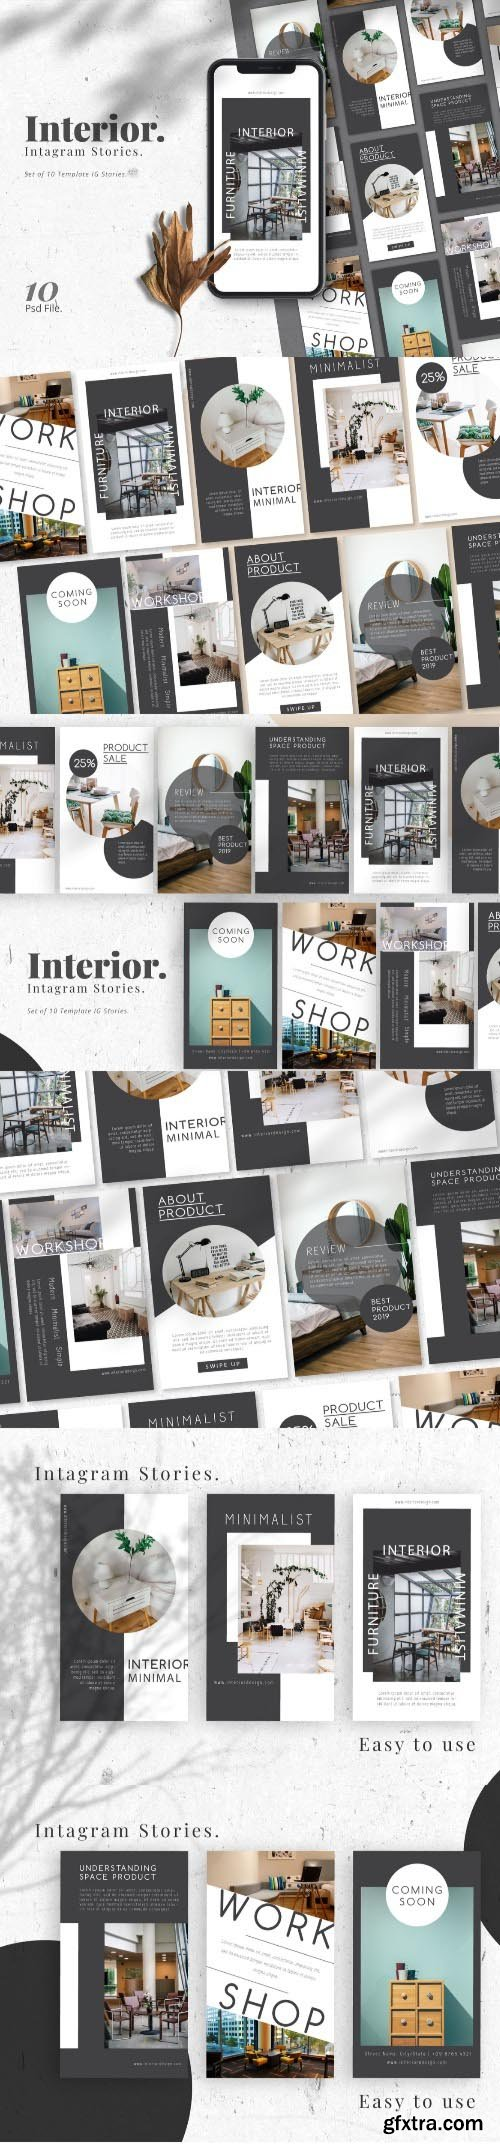 Interior Promotion IG Stories Template